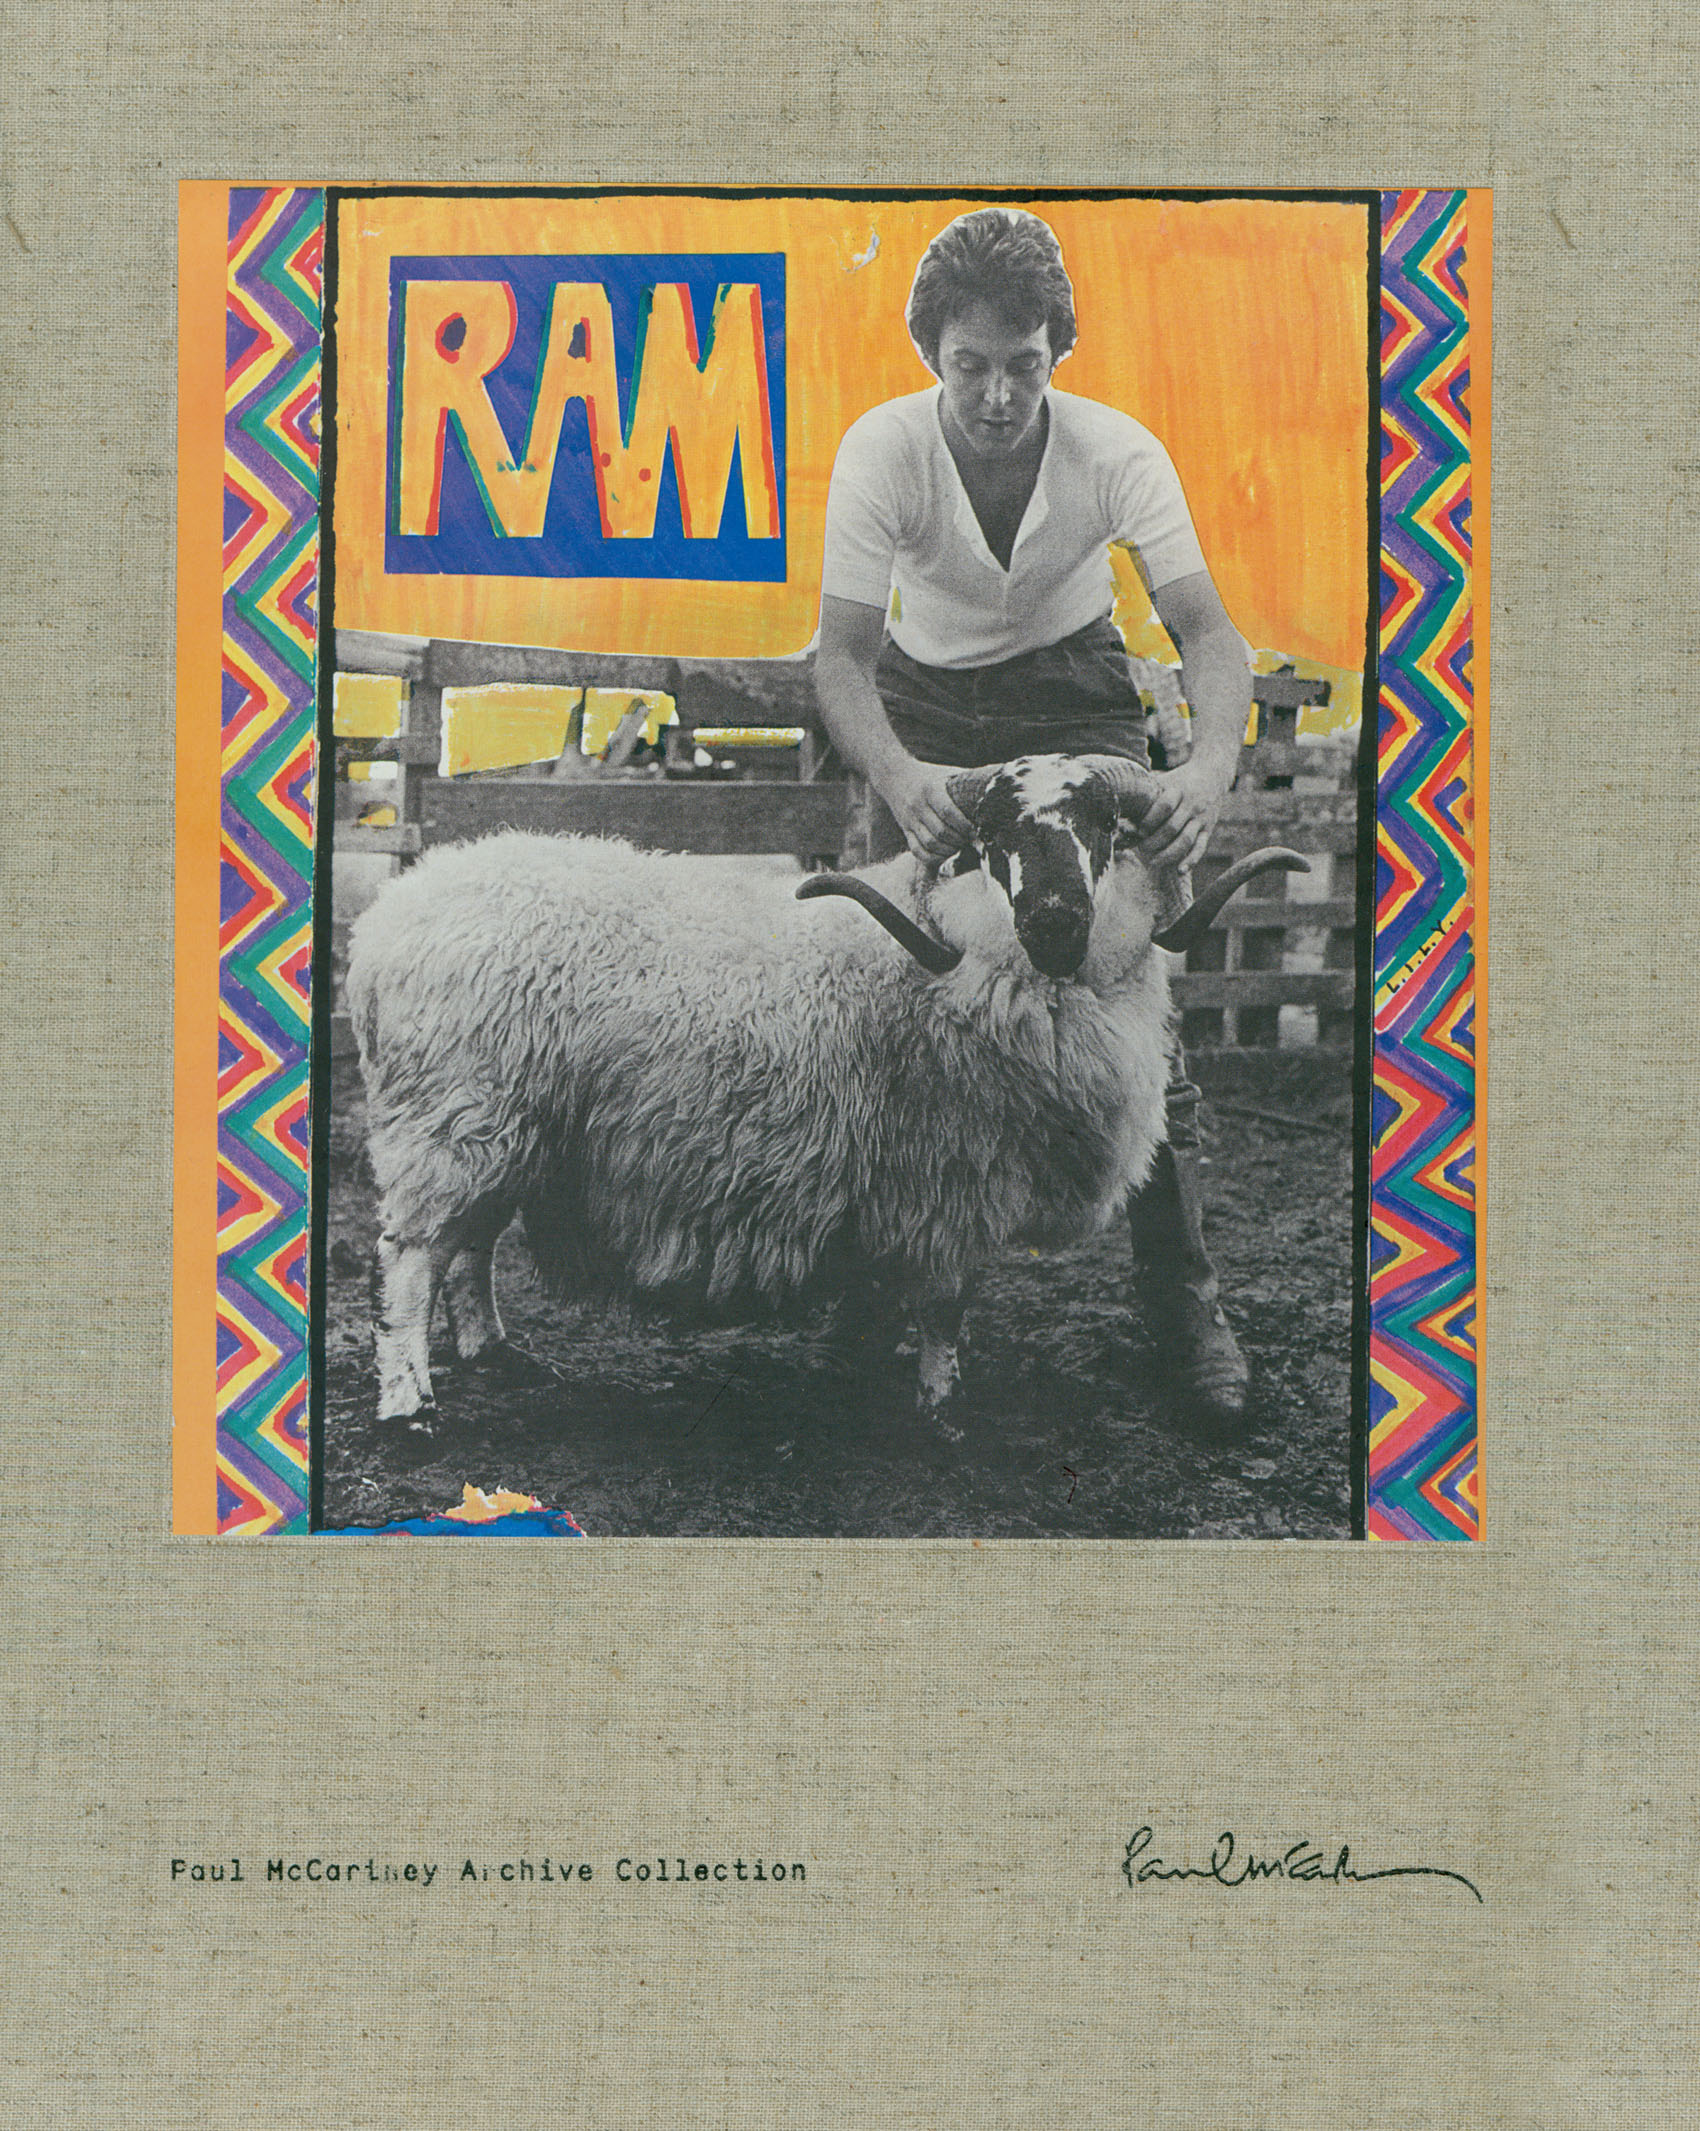 Paul McCartney and Linda McCartney: RAM - Archive Collection